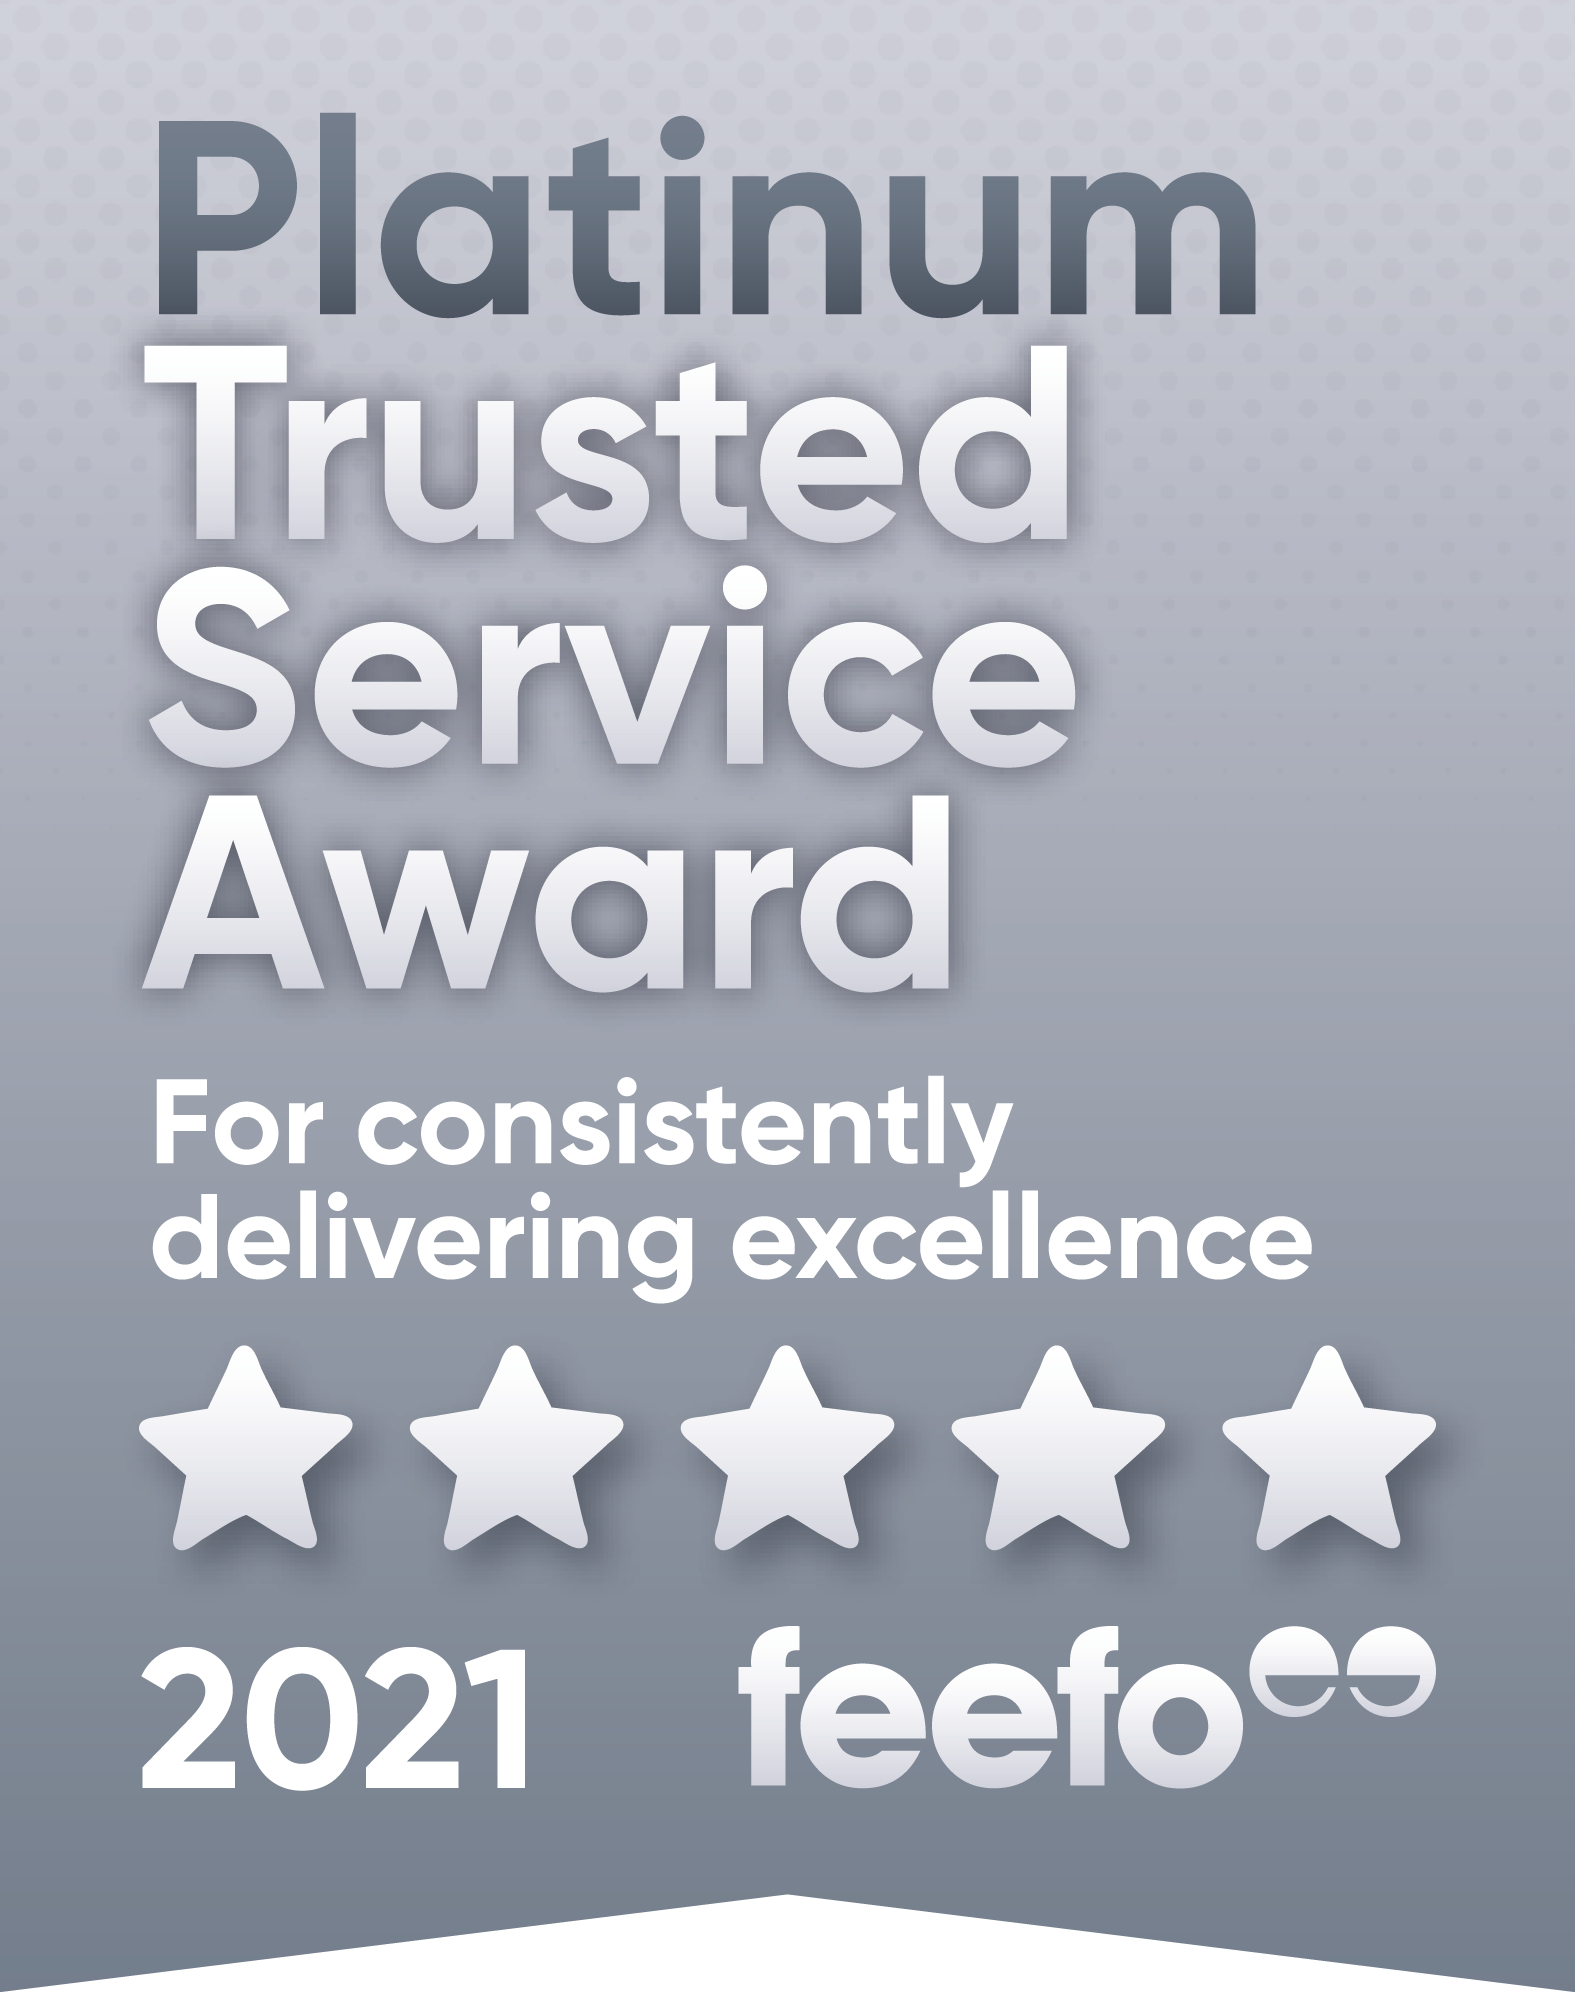 platinum feefo award badge